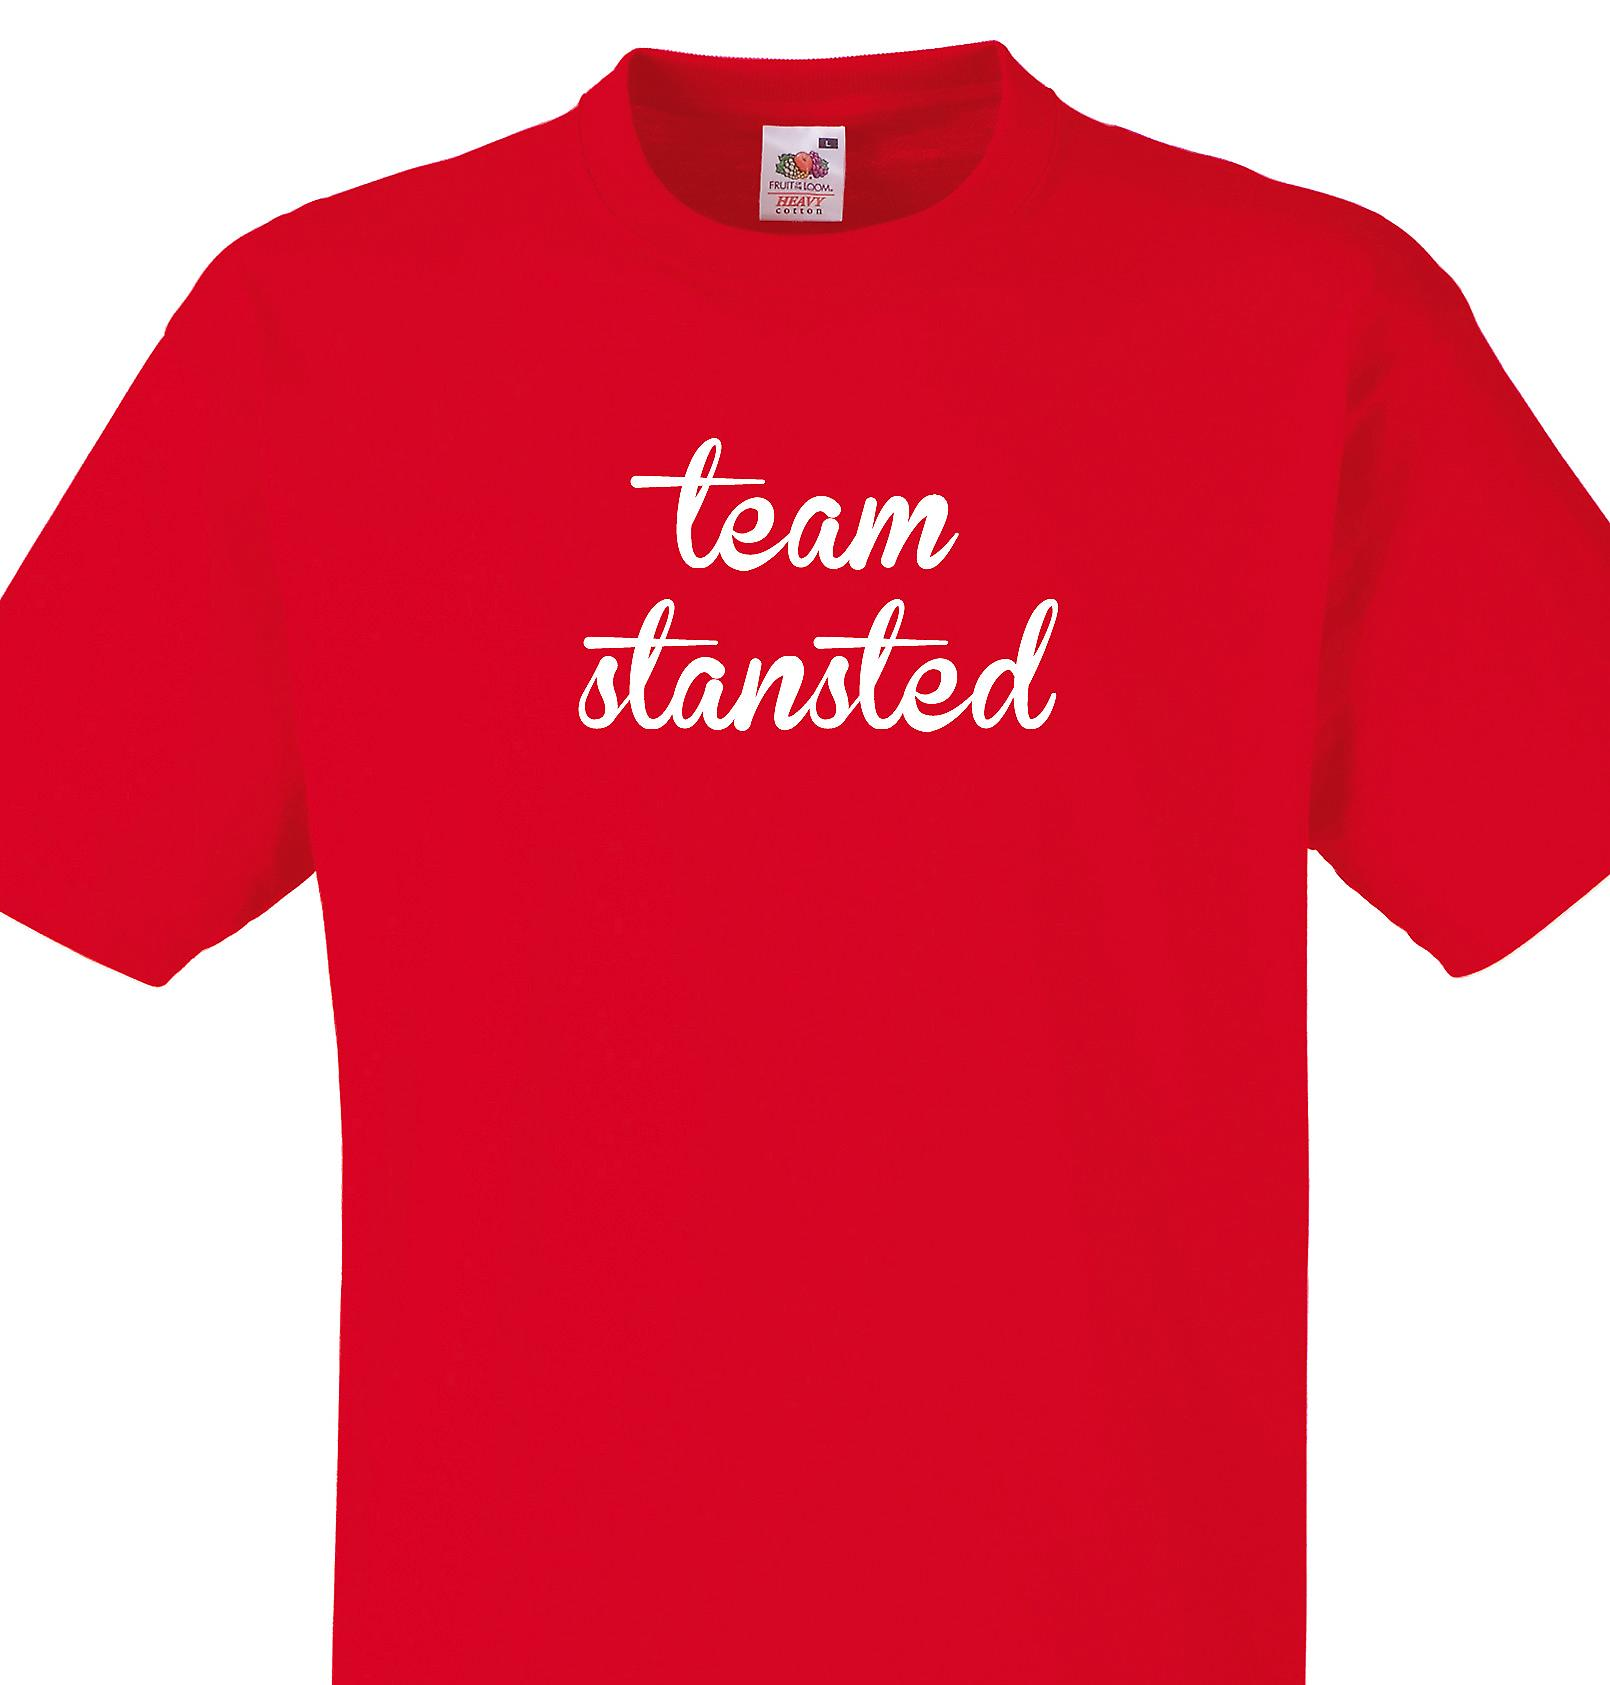 Team Stansted Red T shirt